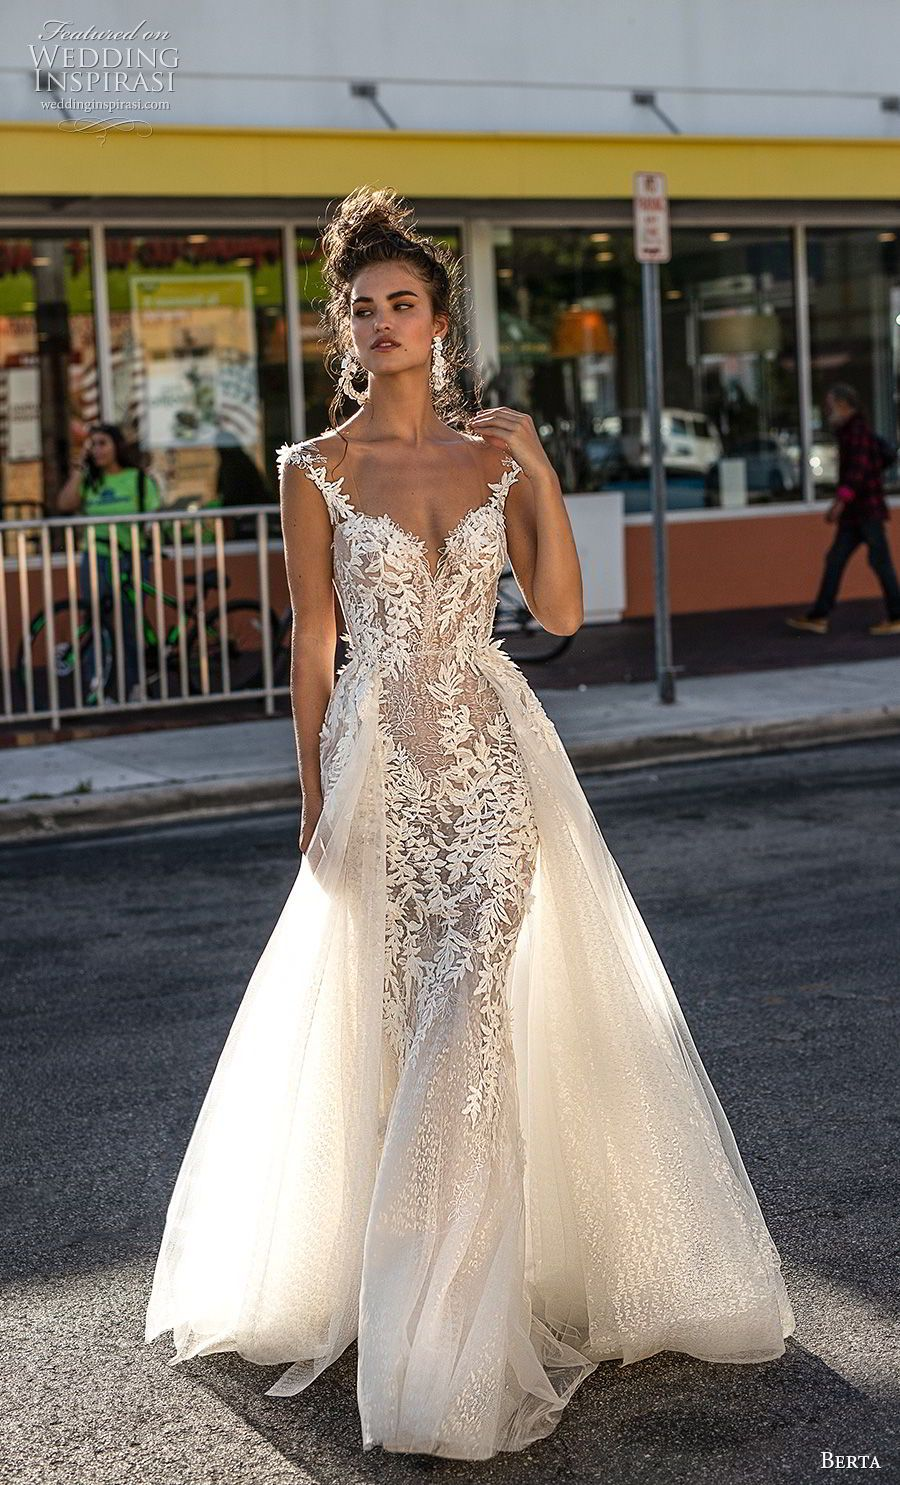 wedding ideas for spring 2019 wedding ideas amp inspirations via berta 2019 28170